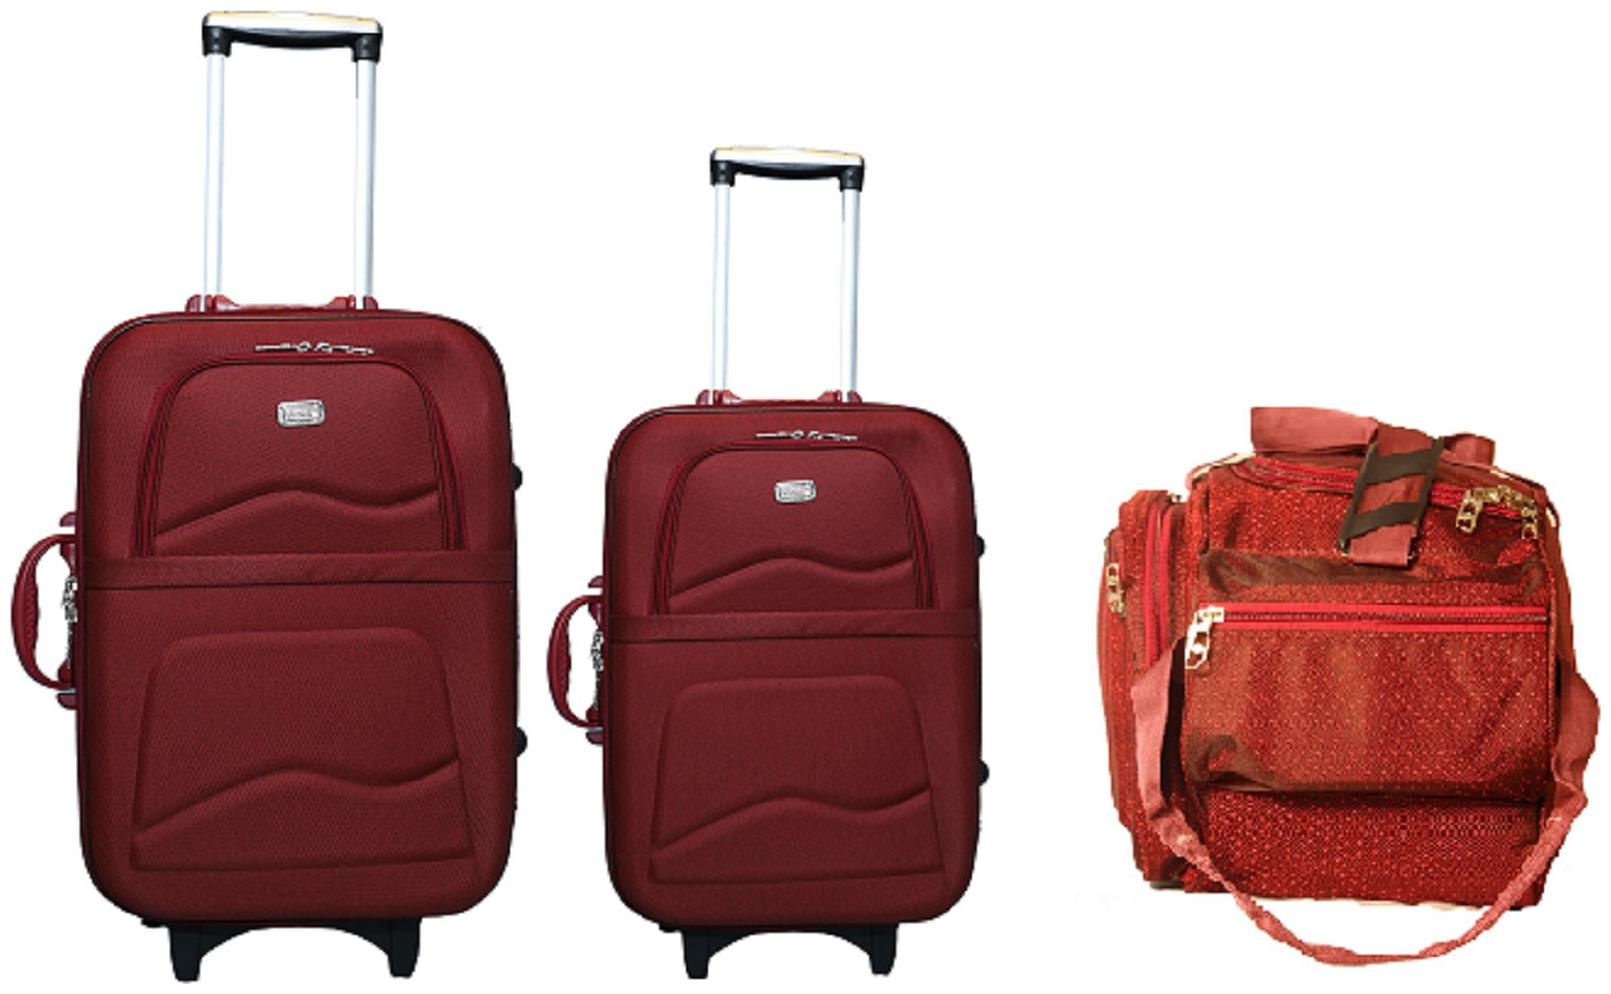 VIDHI Men's and Women's Fiber Fabric Maroon 20 inch Cabin Suitcase Trolley, 24 inch Check in Suitcase Trolley Bag and 18 inch Duffle Bag Combo   Pack